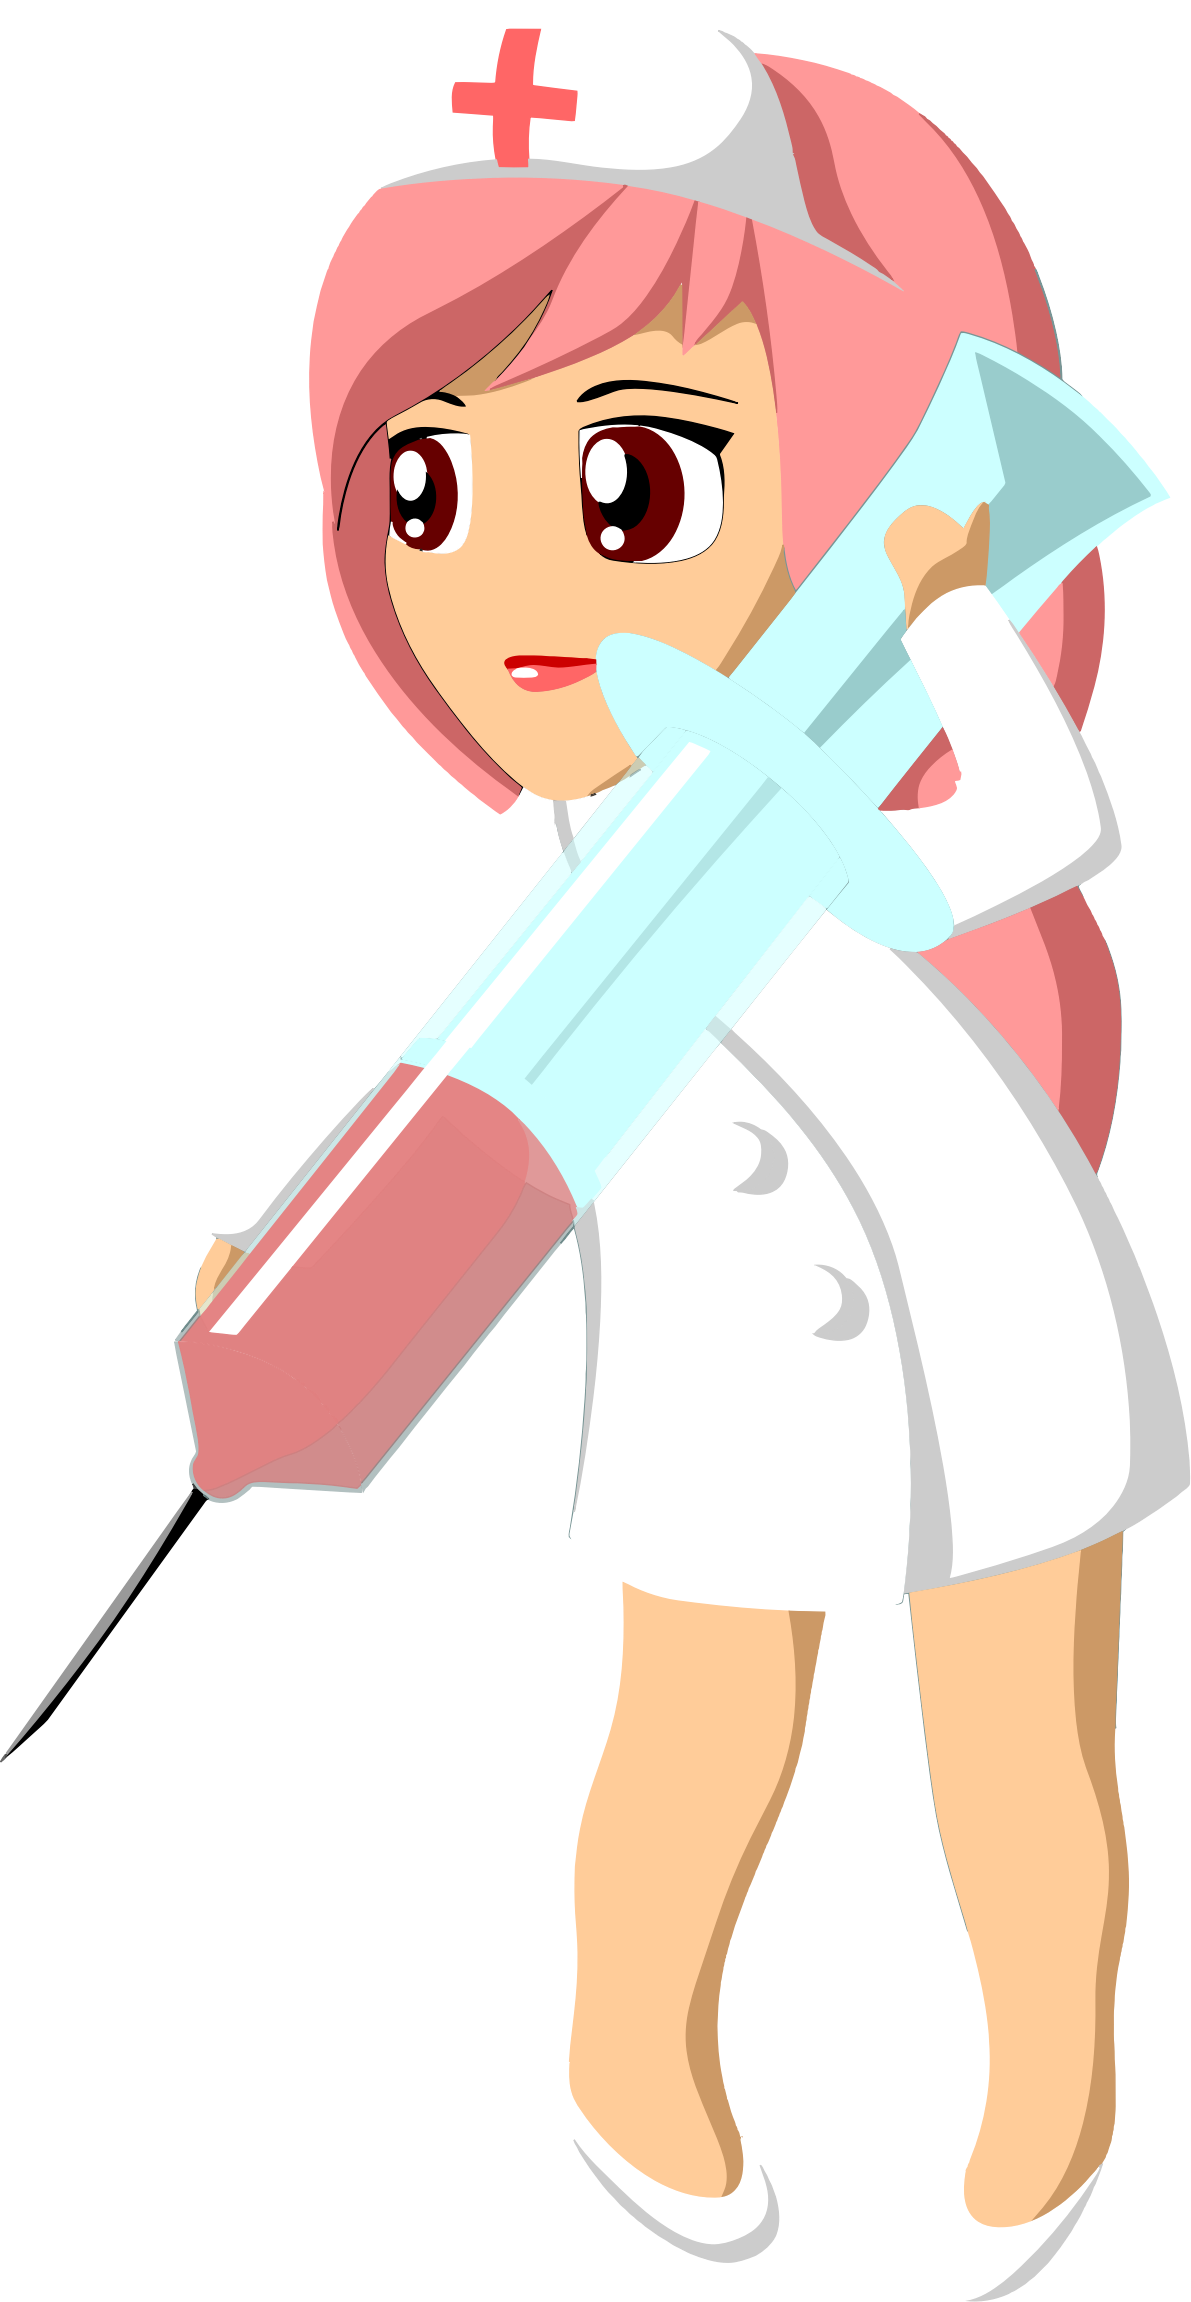 Nurse With Giant Syringe by GDJ